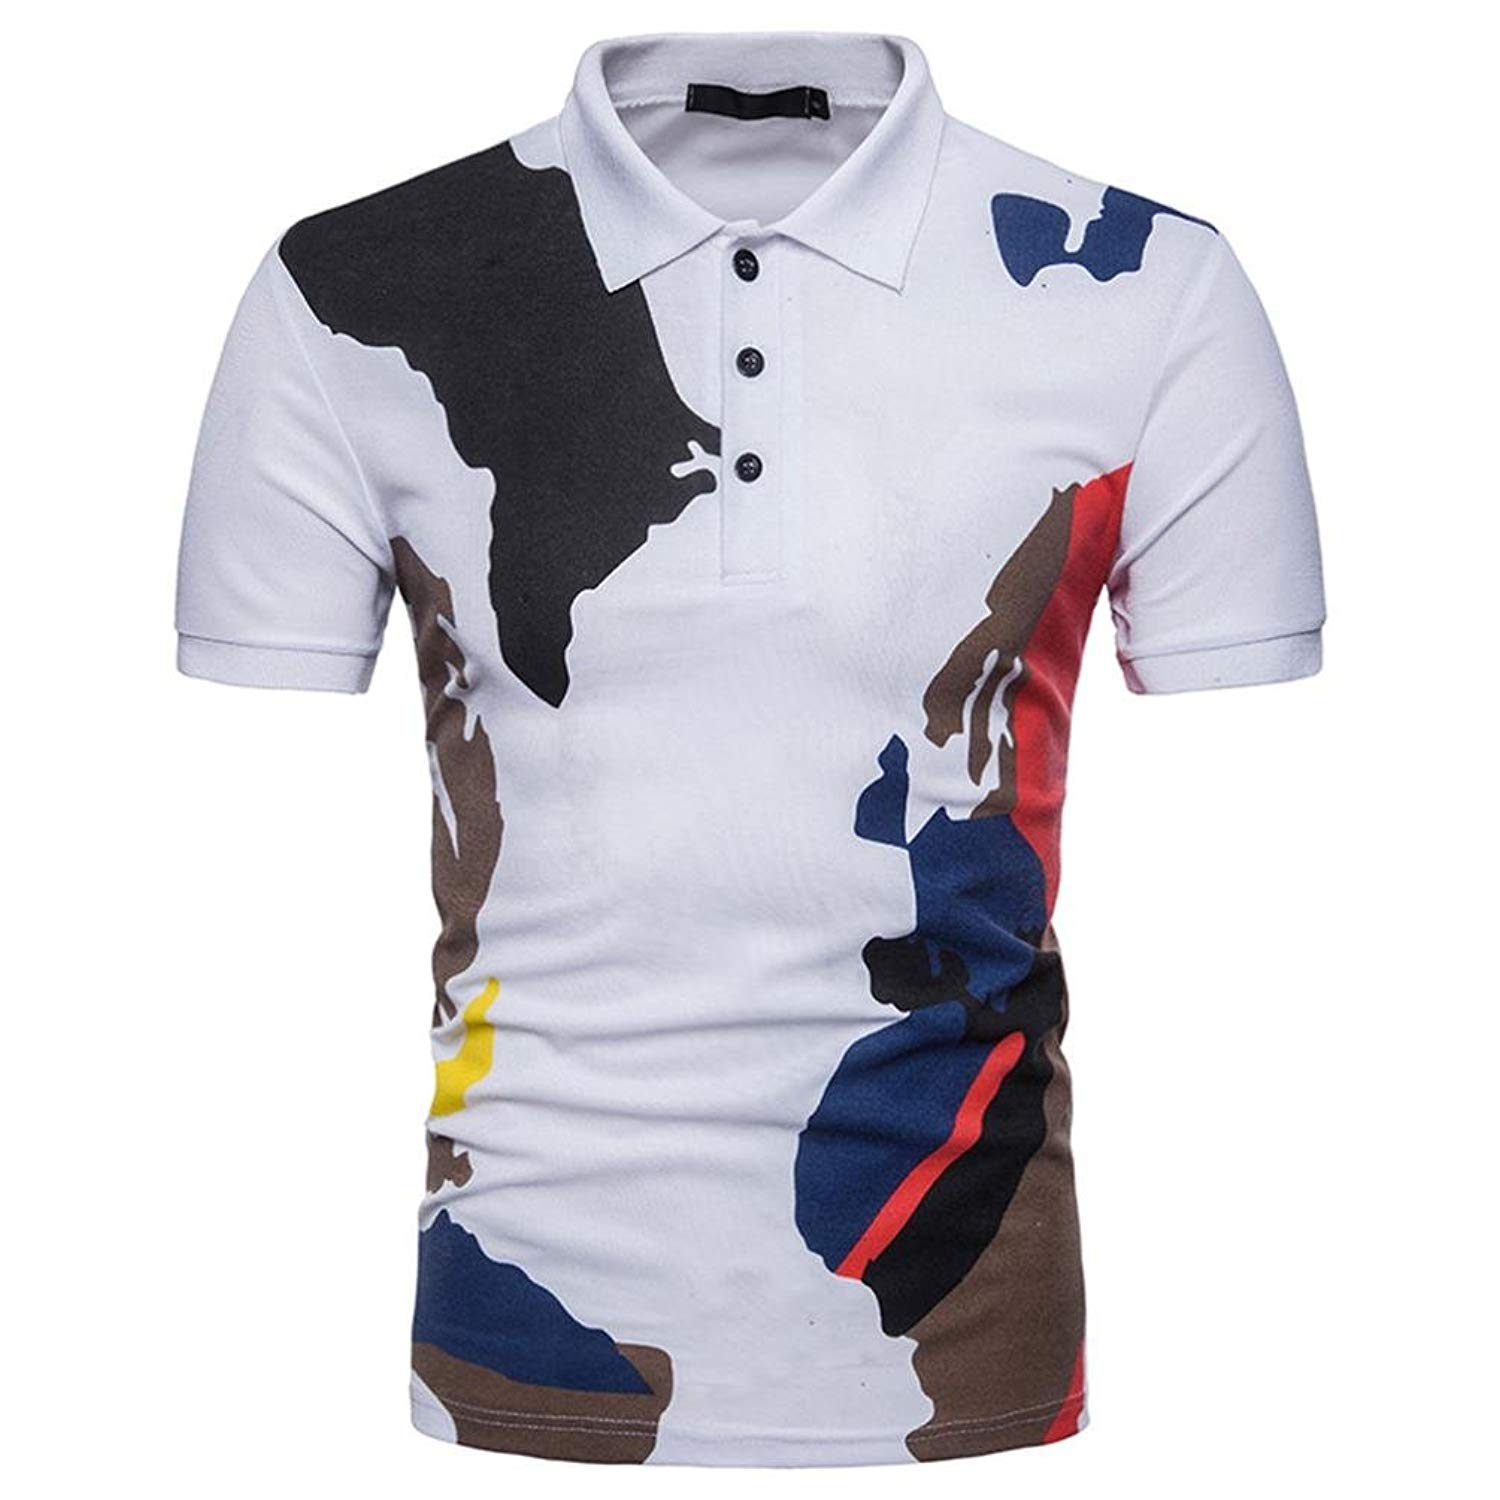 d22f70f3b64 Get Quotations · Challyhope Mens Button Color Block T-Shirt Short Sleeve  Slim Fit Casual Polo Shirt